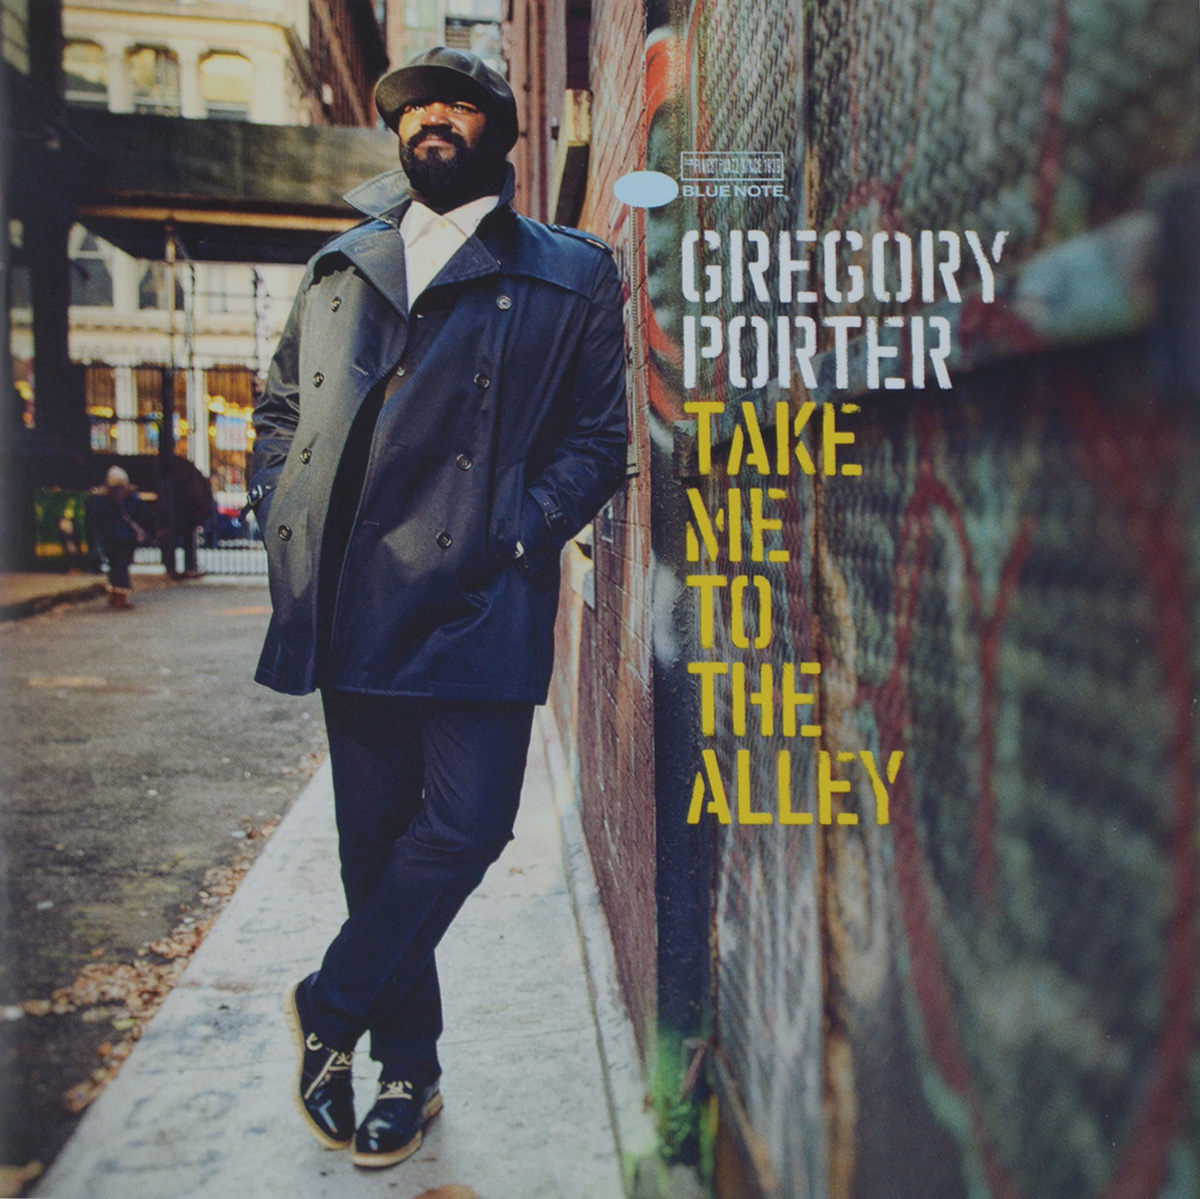 Грегори Портер Gregory Porter. Take Me To The Alley грегори портер gregory porter take me to the alley deluxe edition cd dvd